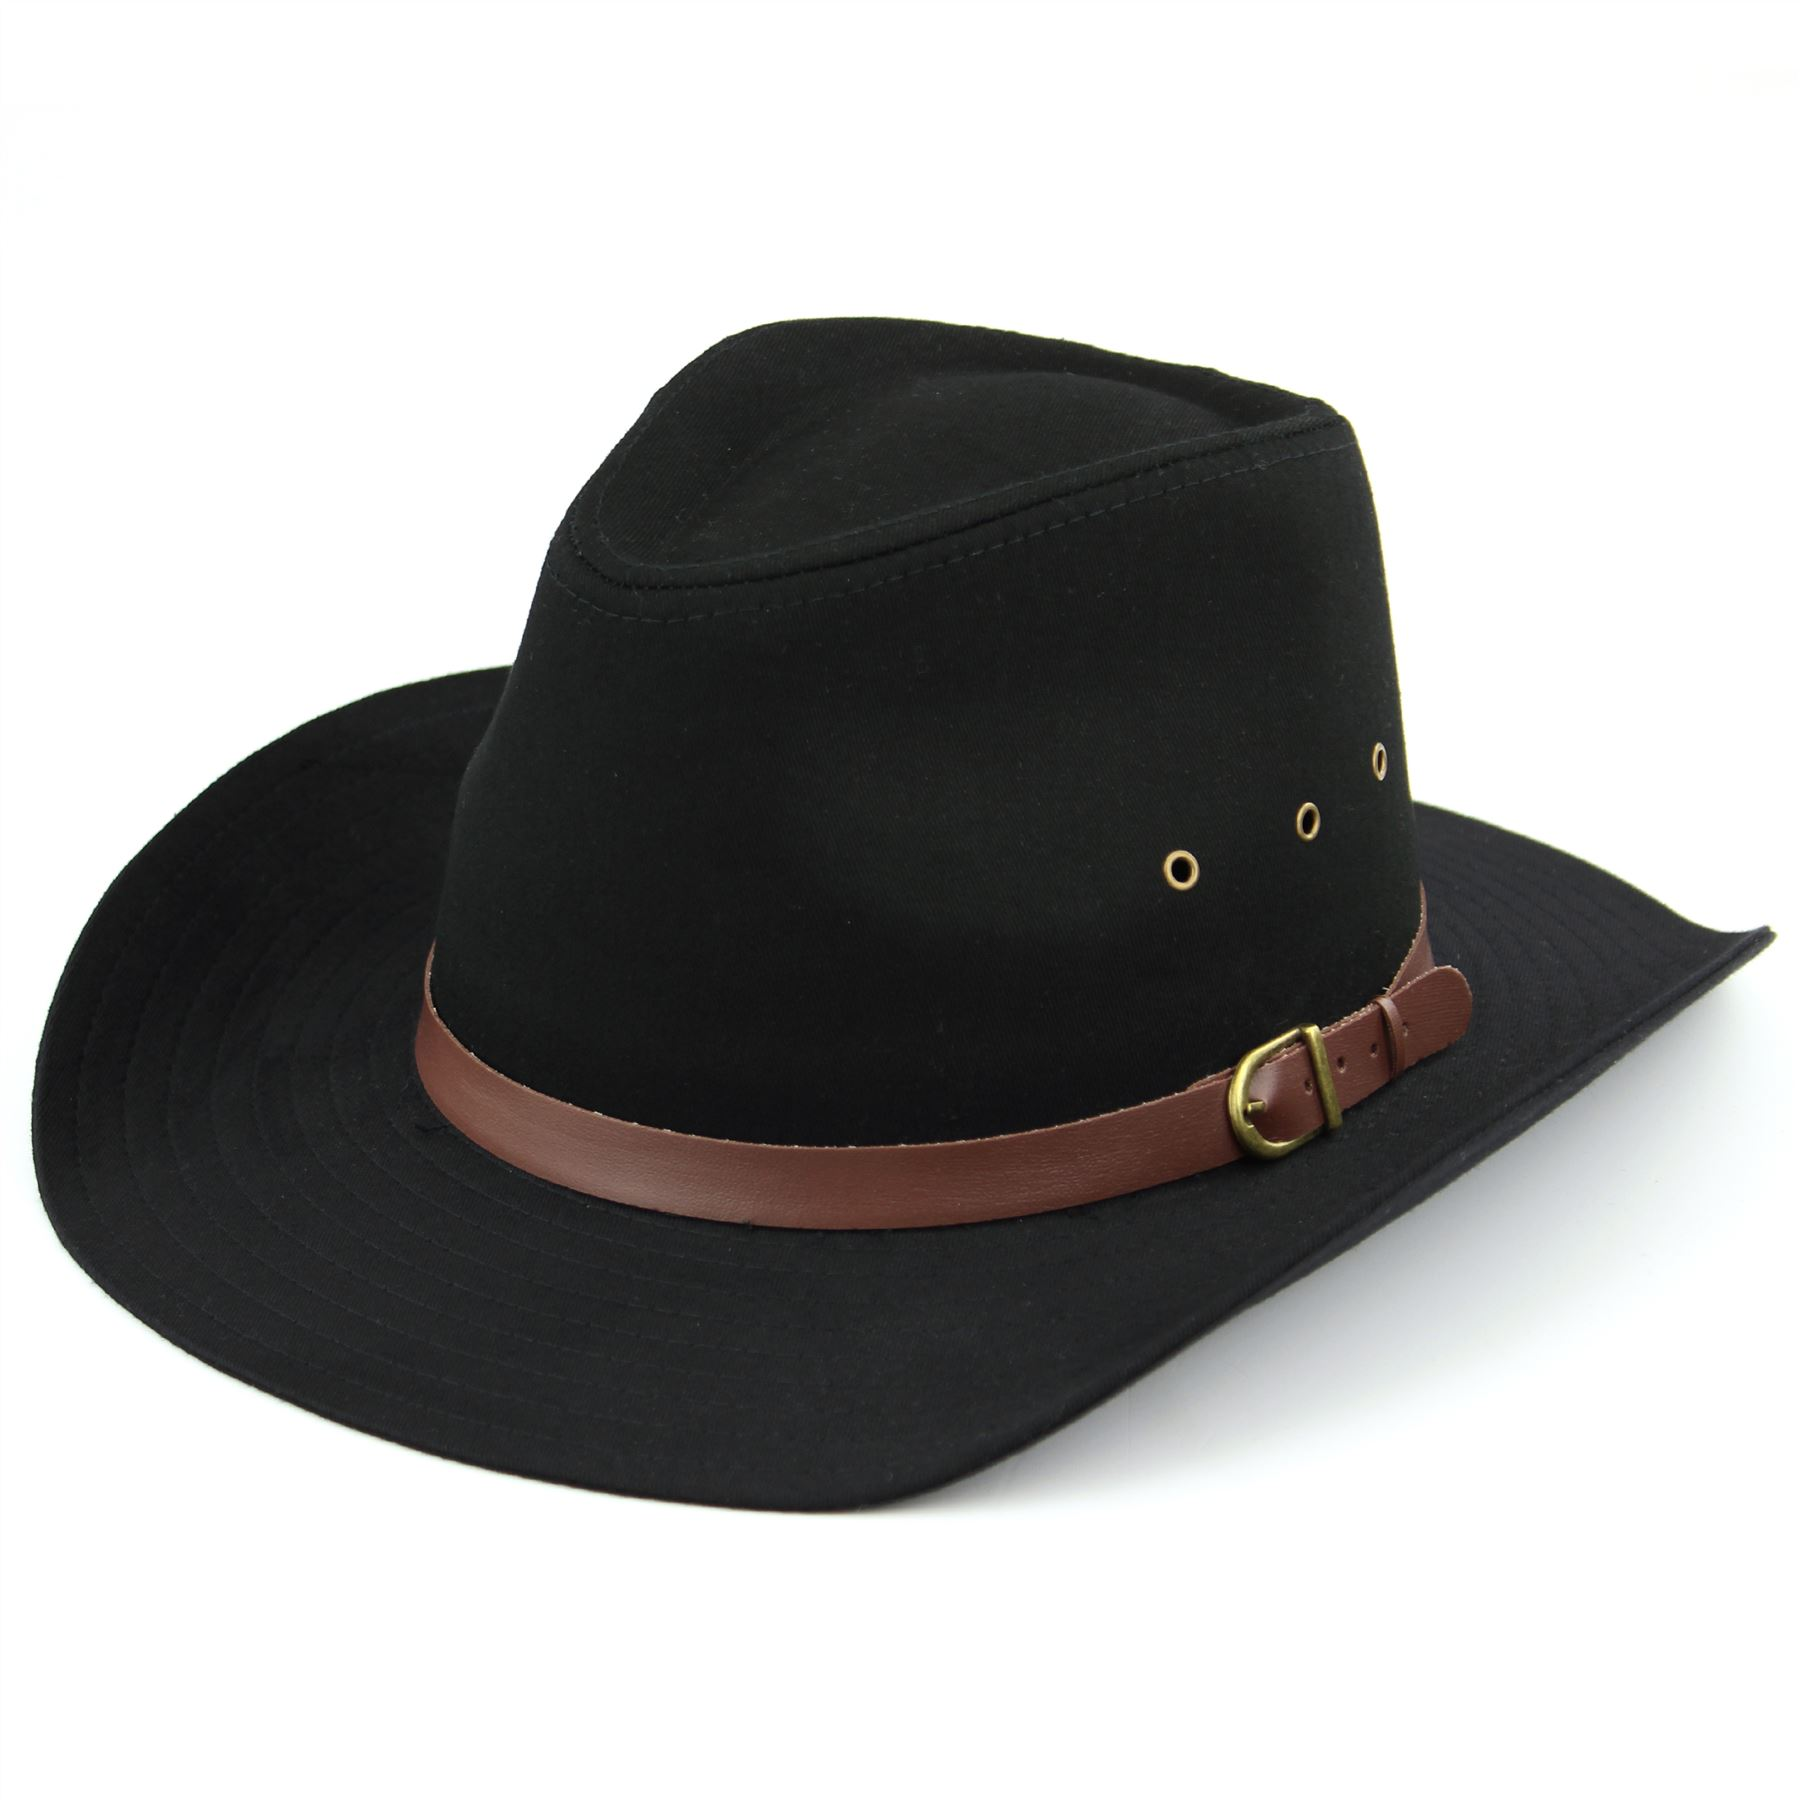 7b8b23bea80 Details about Cowboy Hat Wide Brim Cotton Summer Light Indian Horse Black  Beige New